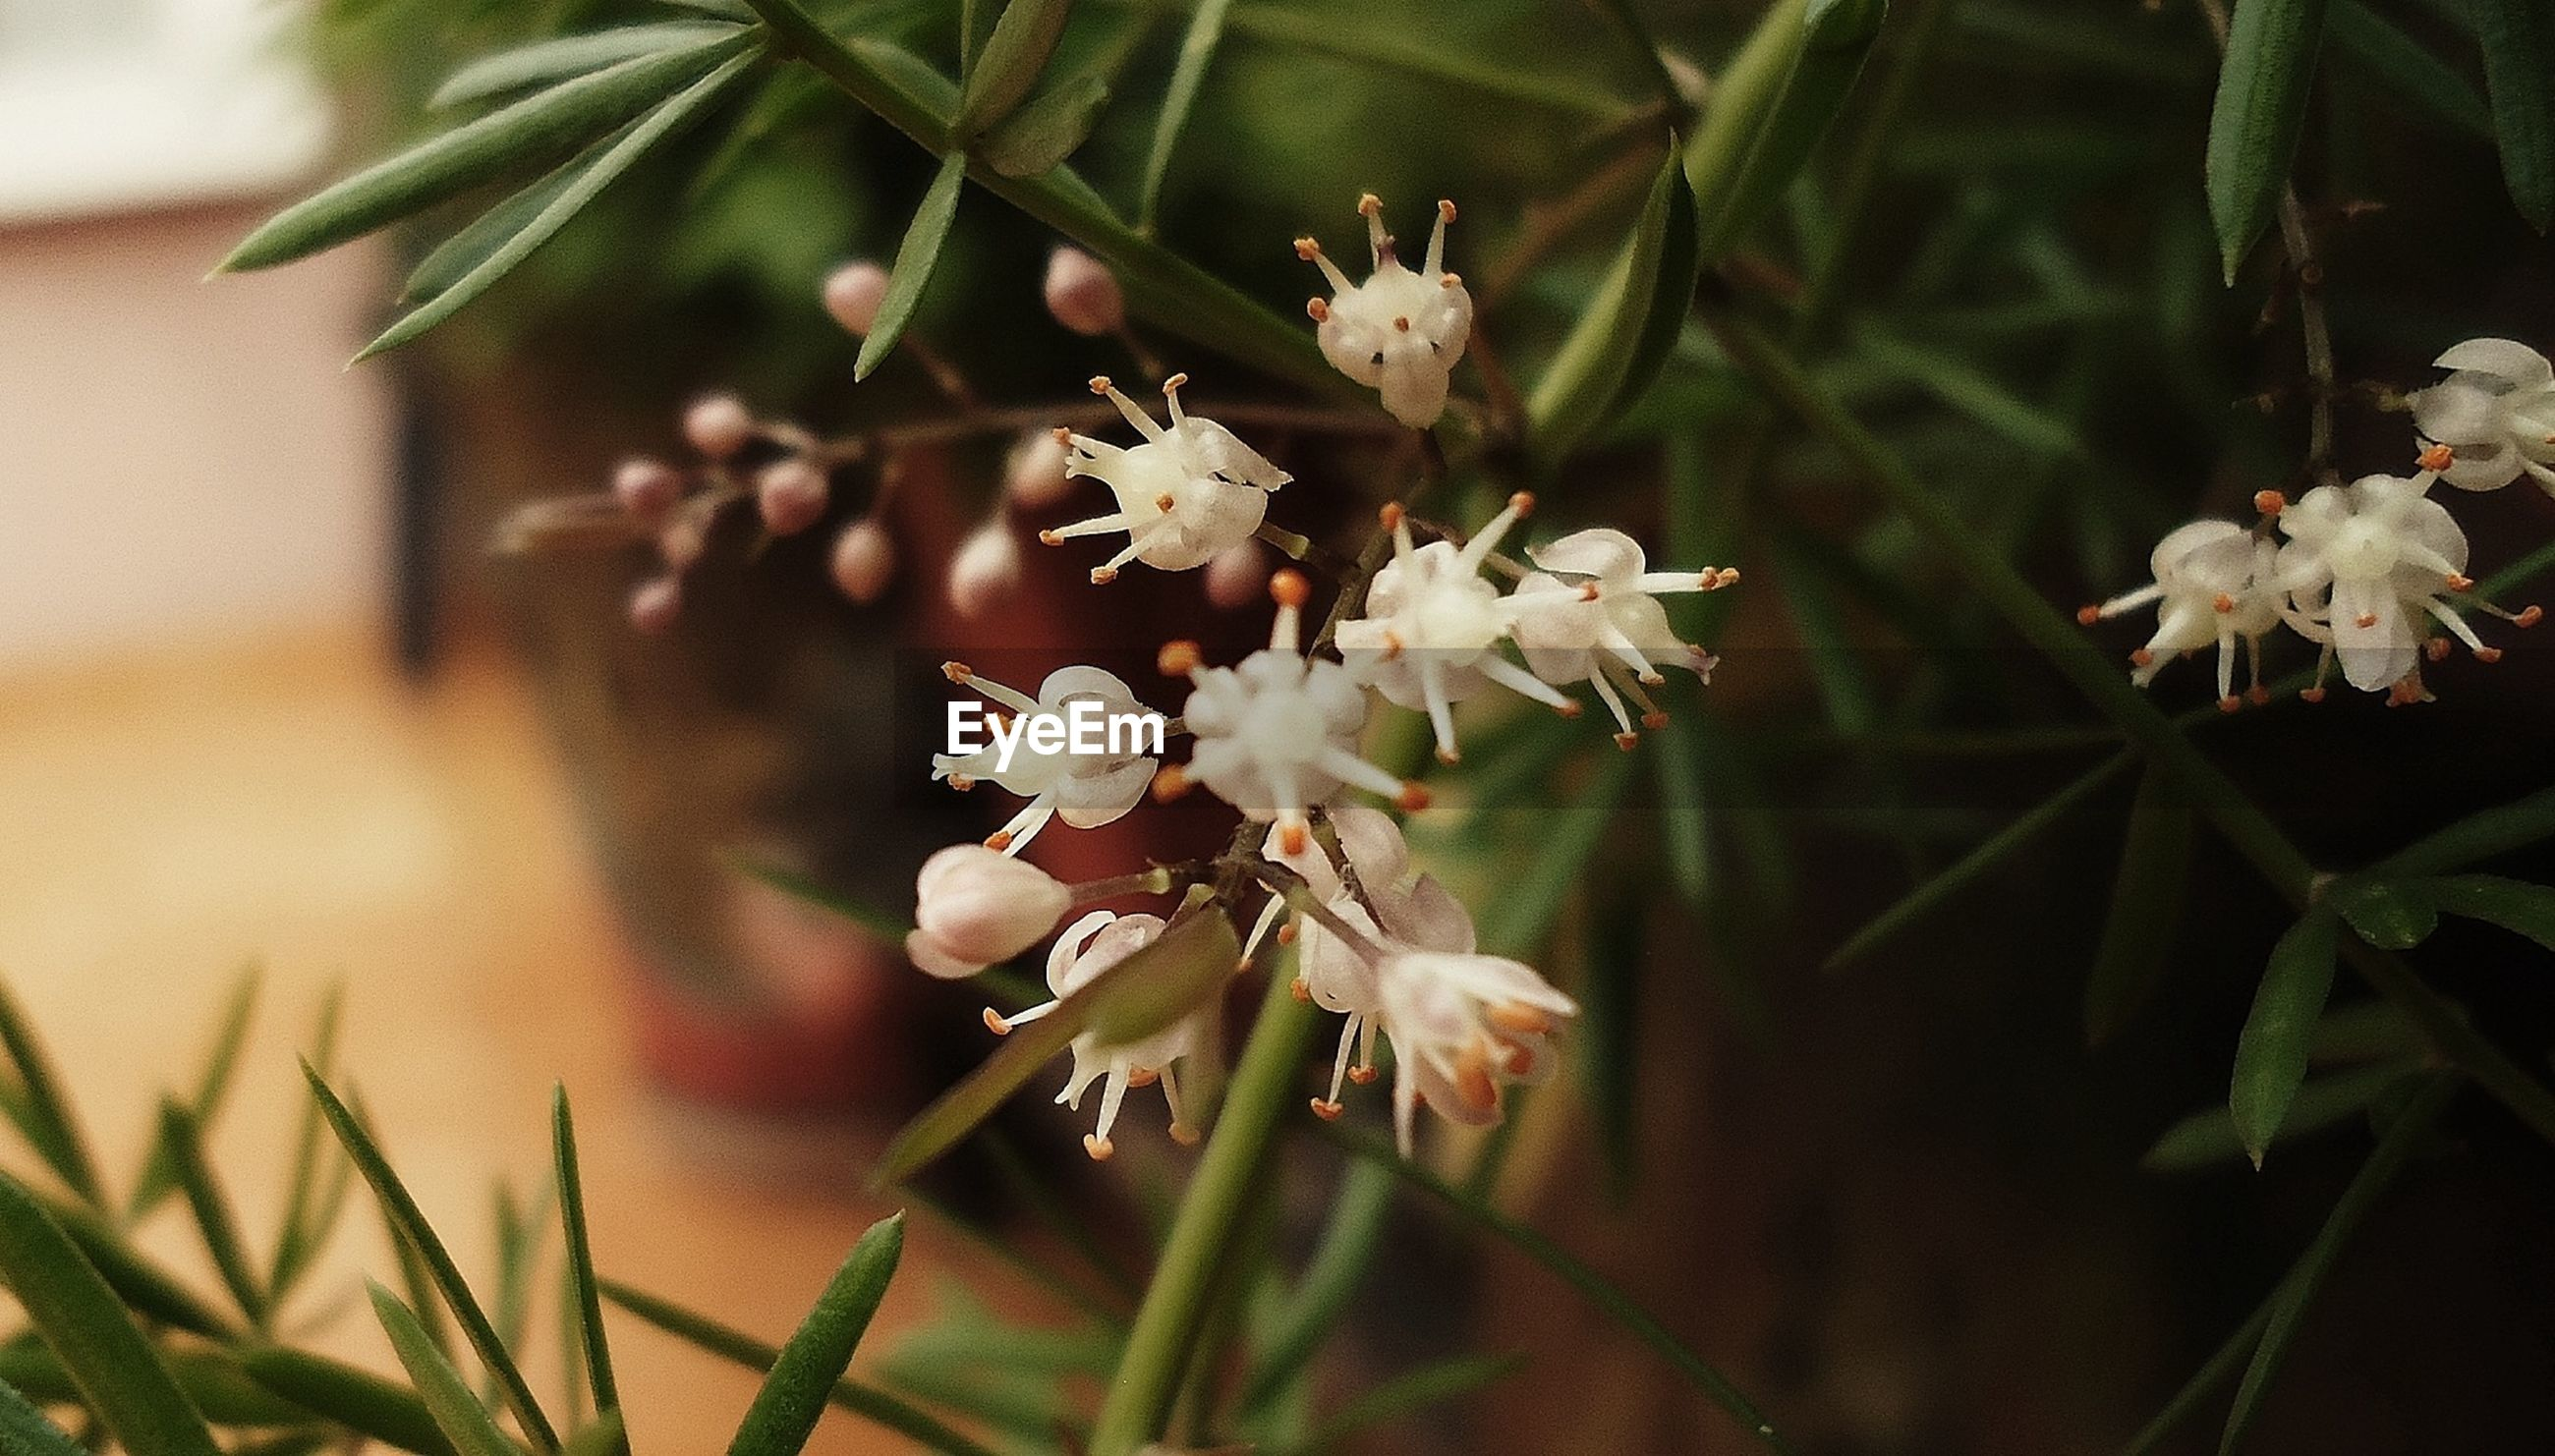 flower, freshness, growth, fragility, petal, white color, beauty in nature, close-up, focus on foreground, flower head, plant, nature, leaf, blooming, in bloom, blossom, selective focus, stem, bud, stamen